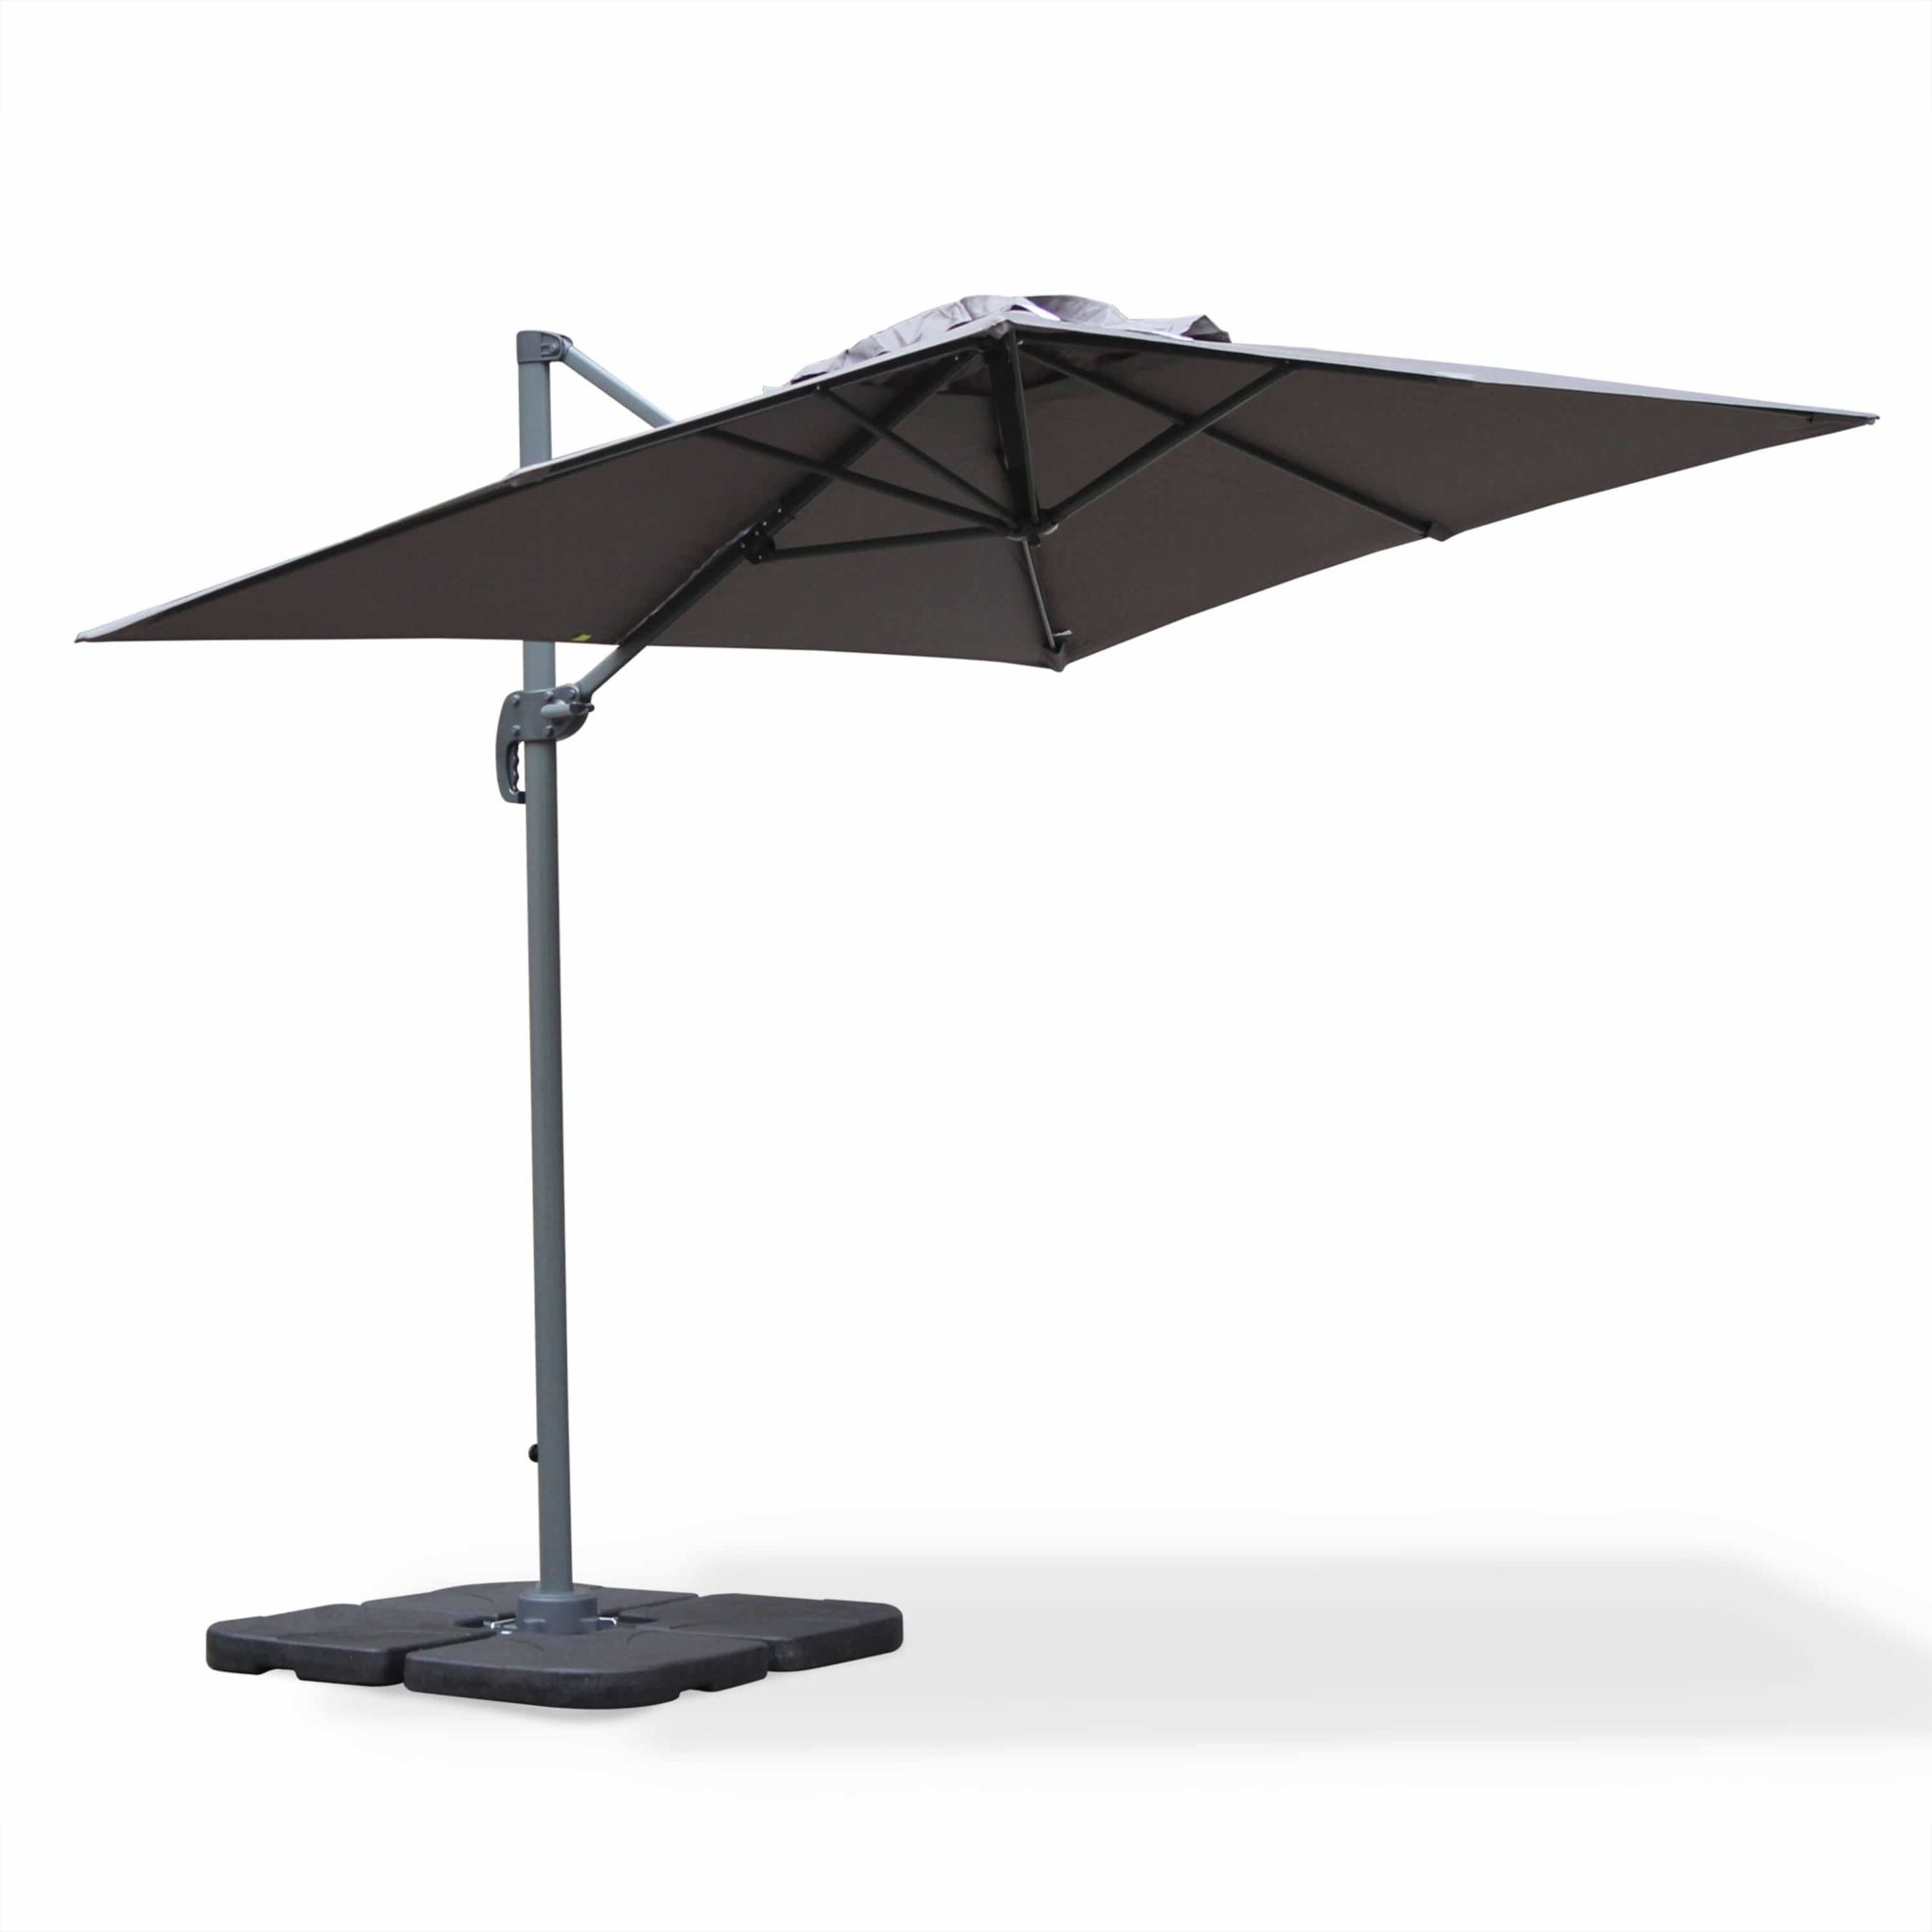 BISCAROSSE 2x3m Aluminium Cantilever Outdoor Umbrella Grey with 360 Rotation Pedal